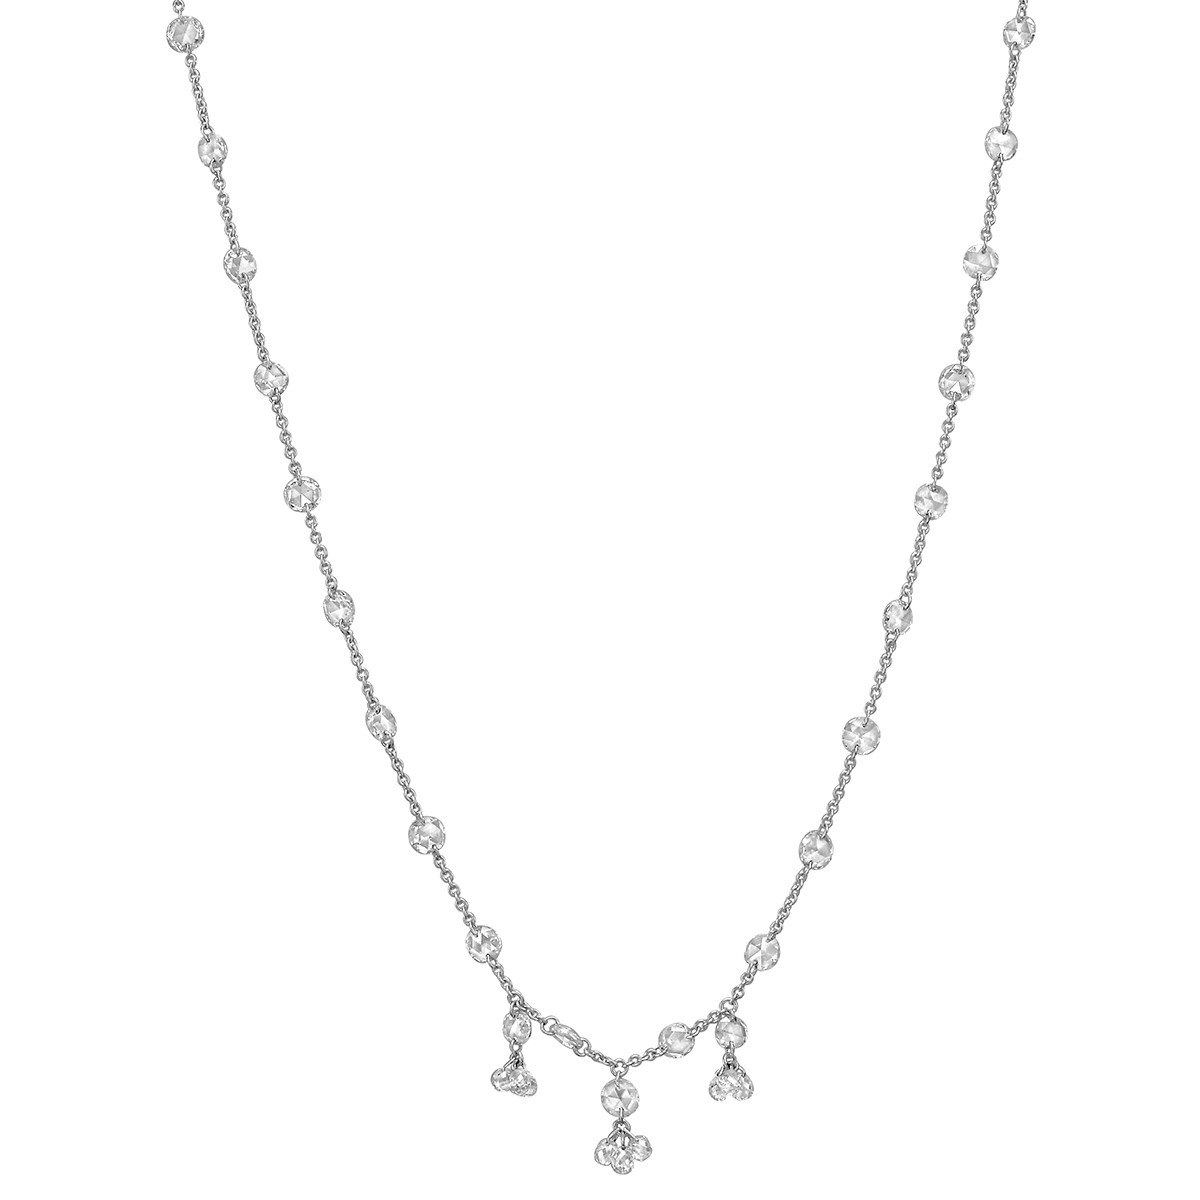 Diamond Chain Necklace with Briolette Clusters (3.64 ct tw)